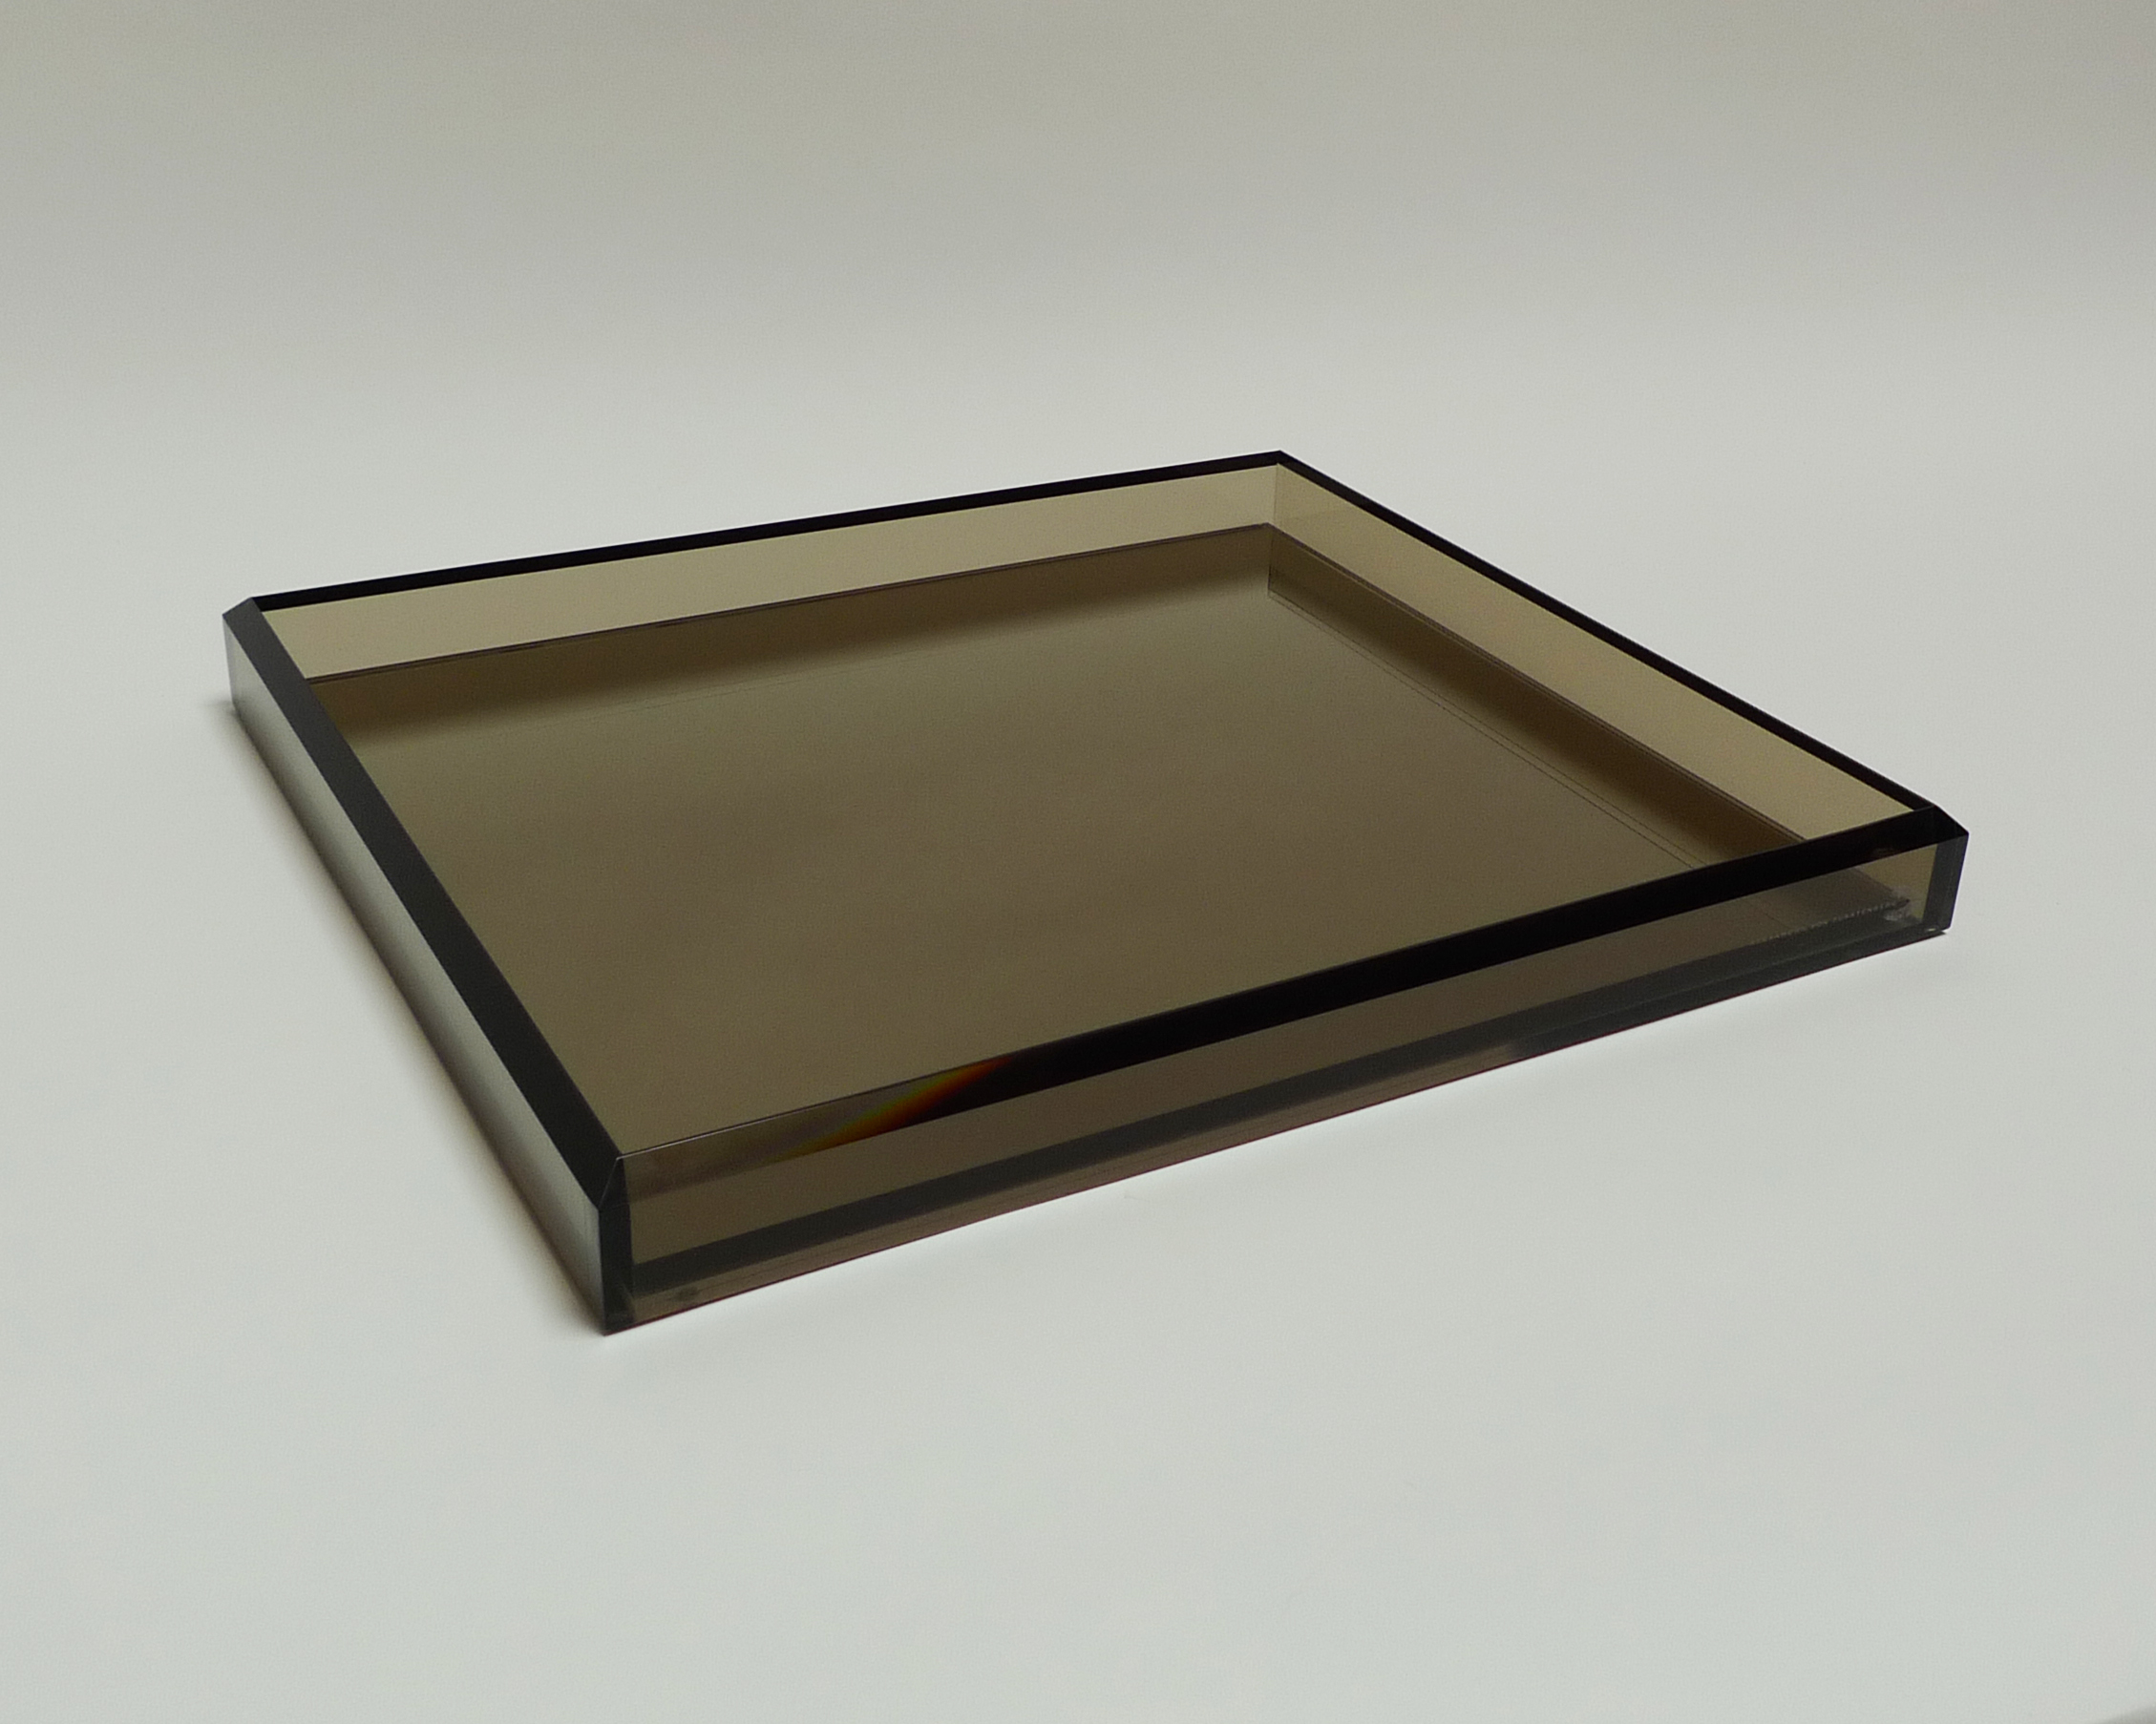 Amazing mirrored vanity tray with black color design